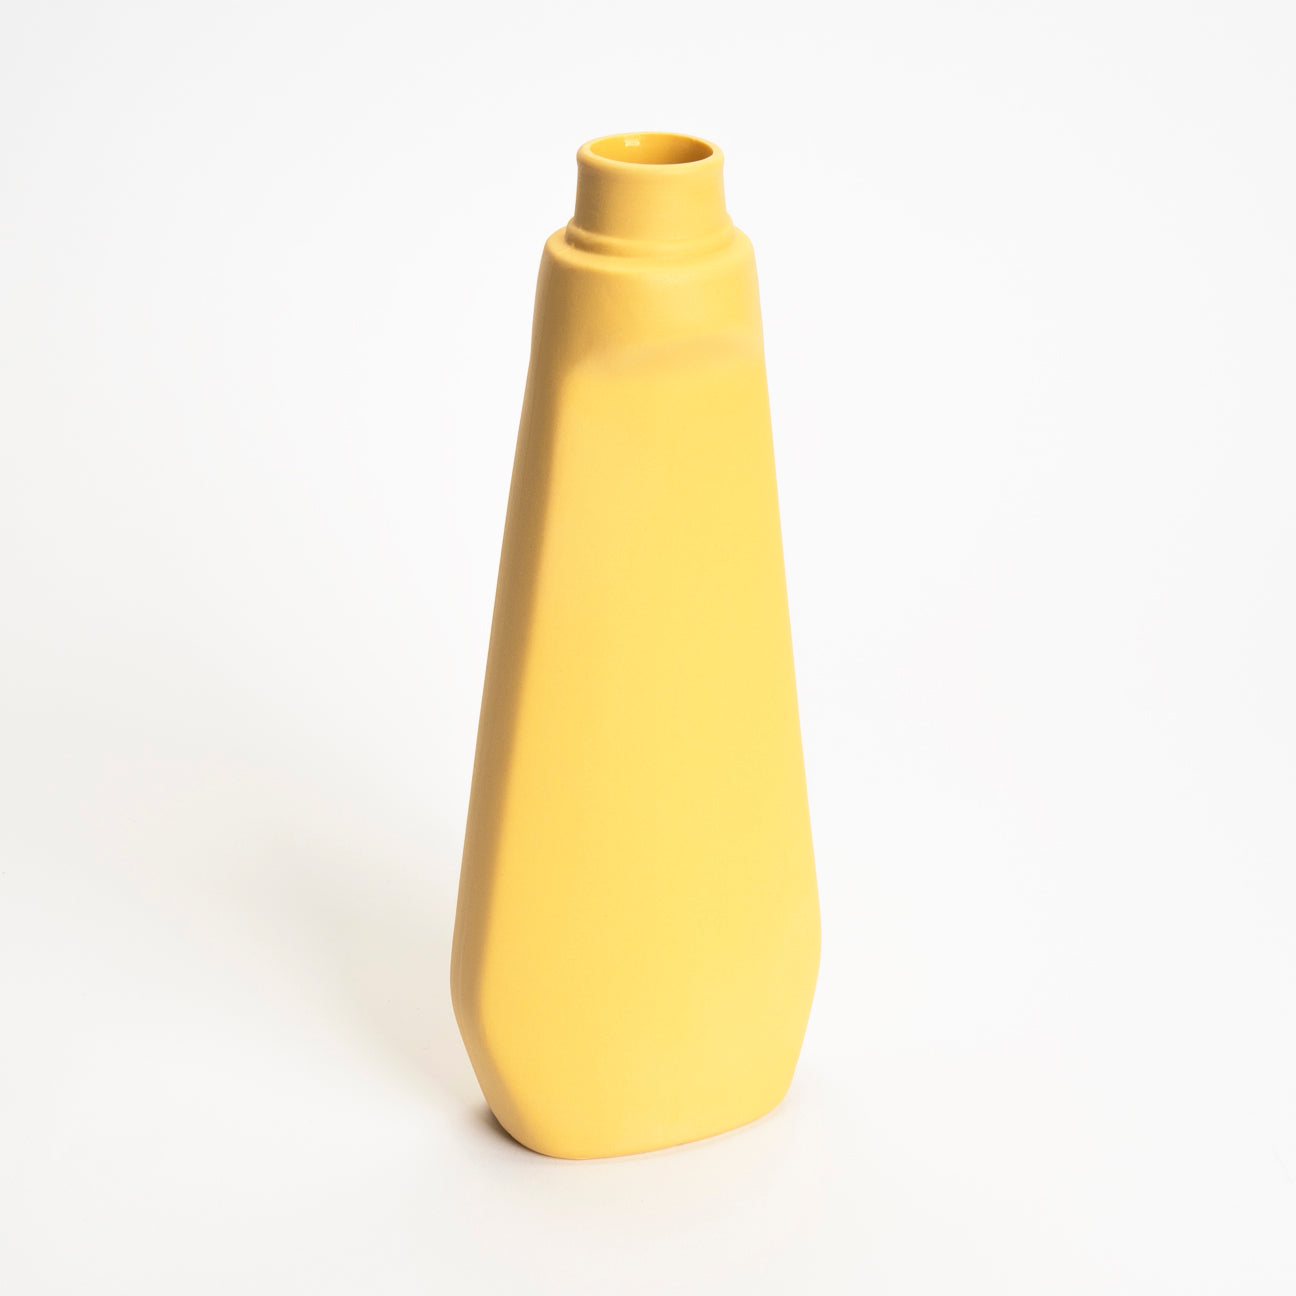 Bottle Vase #4 in Warm Yellow